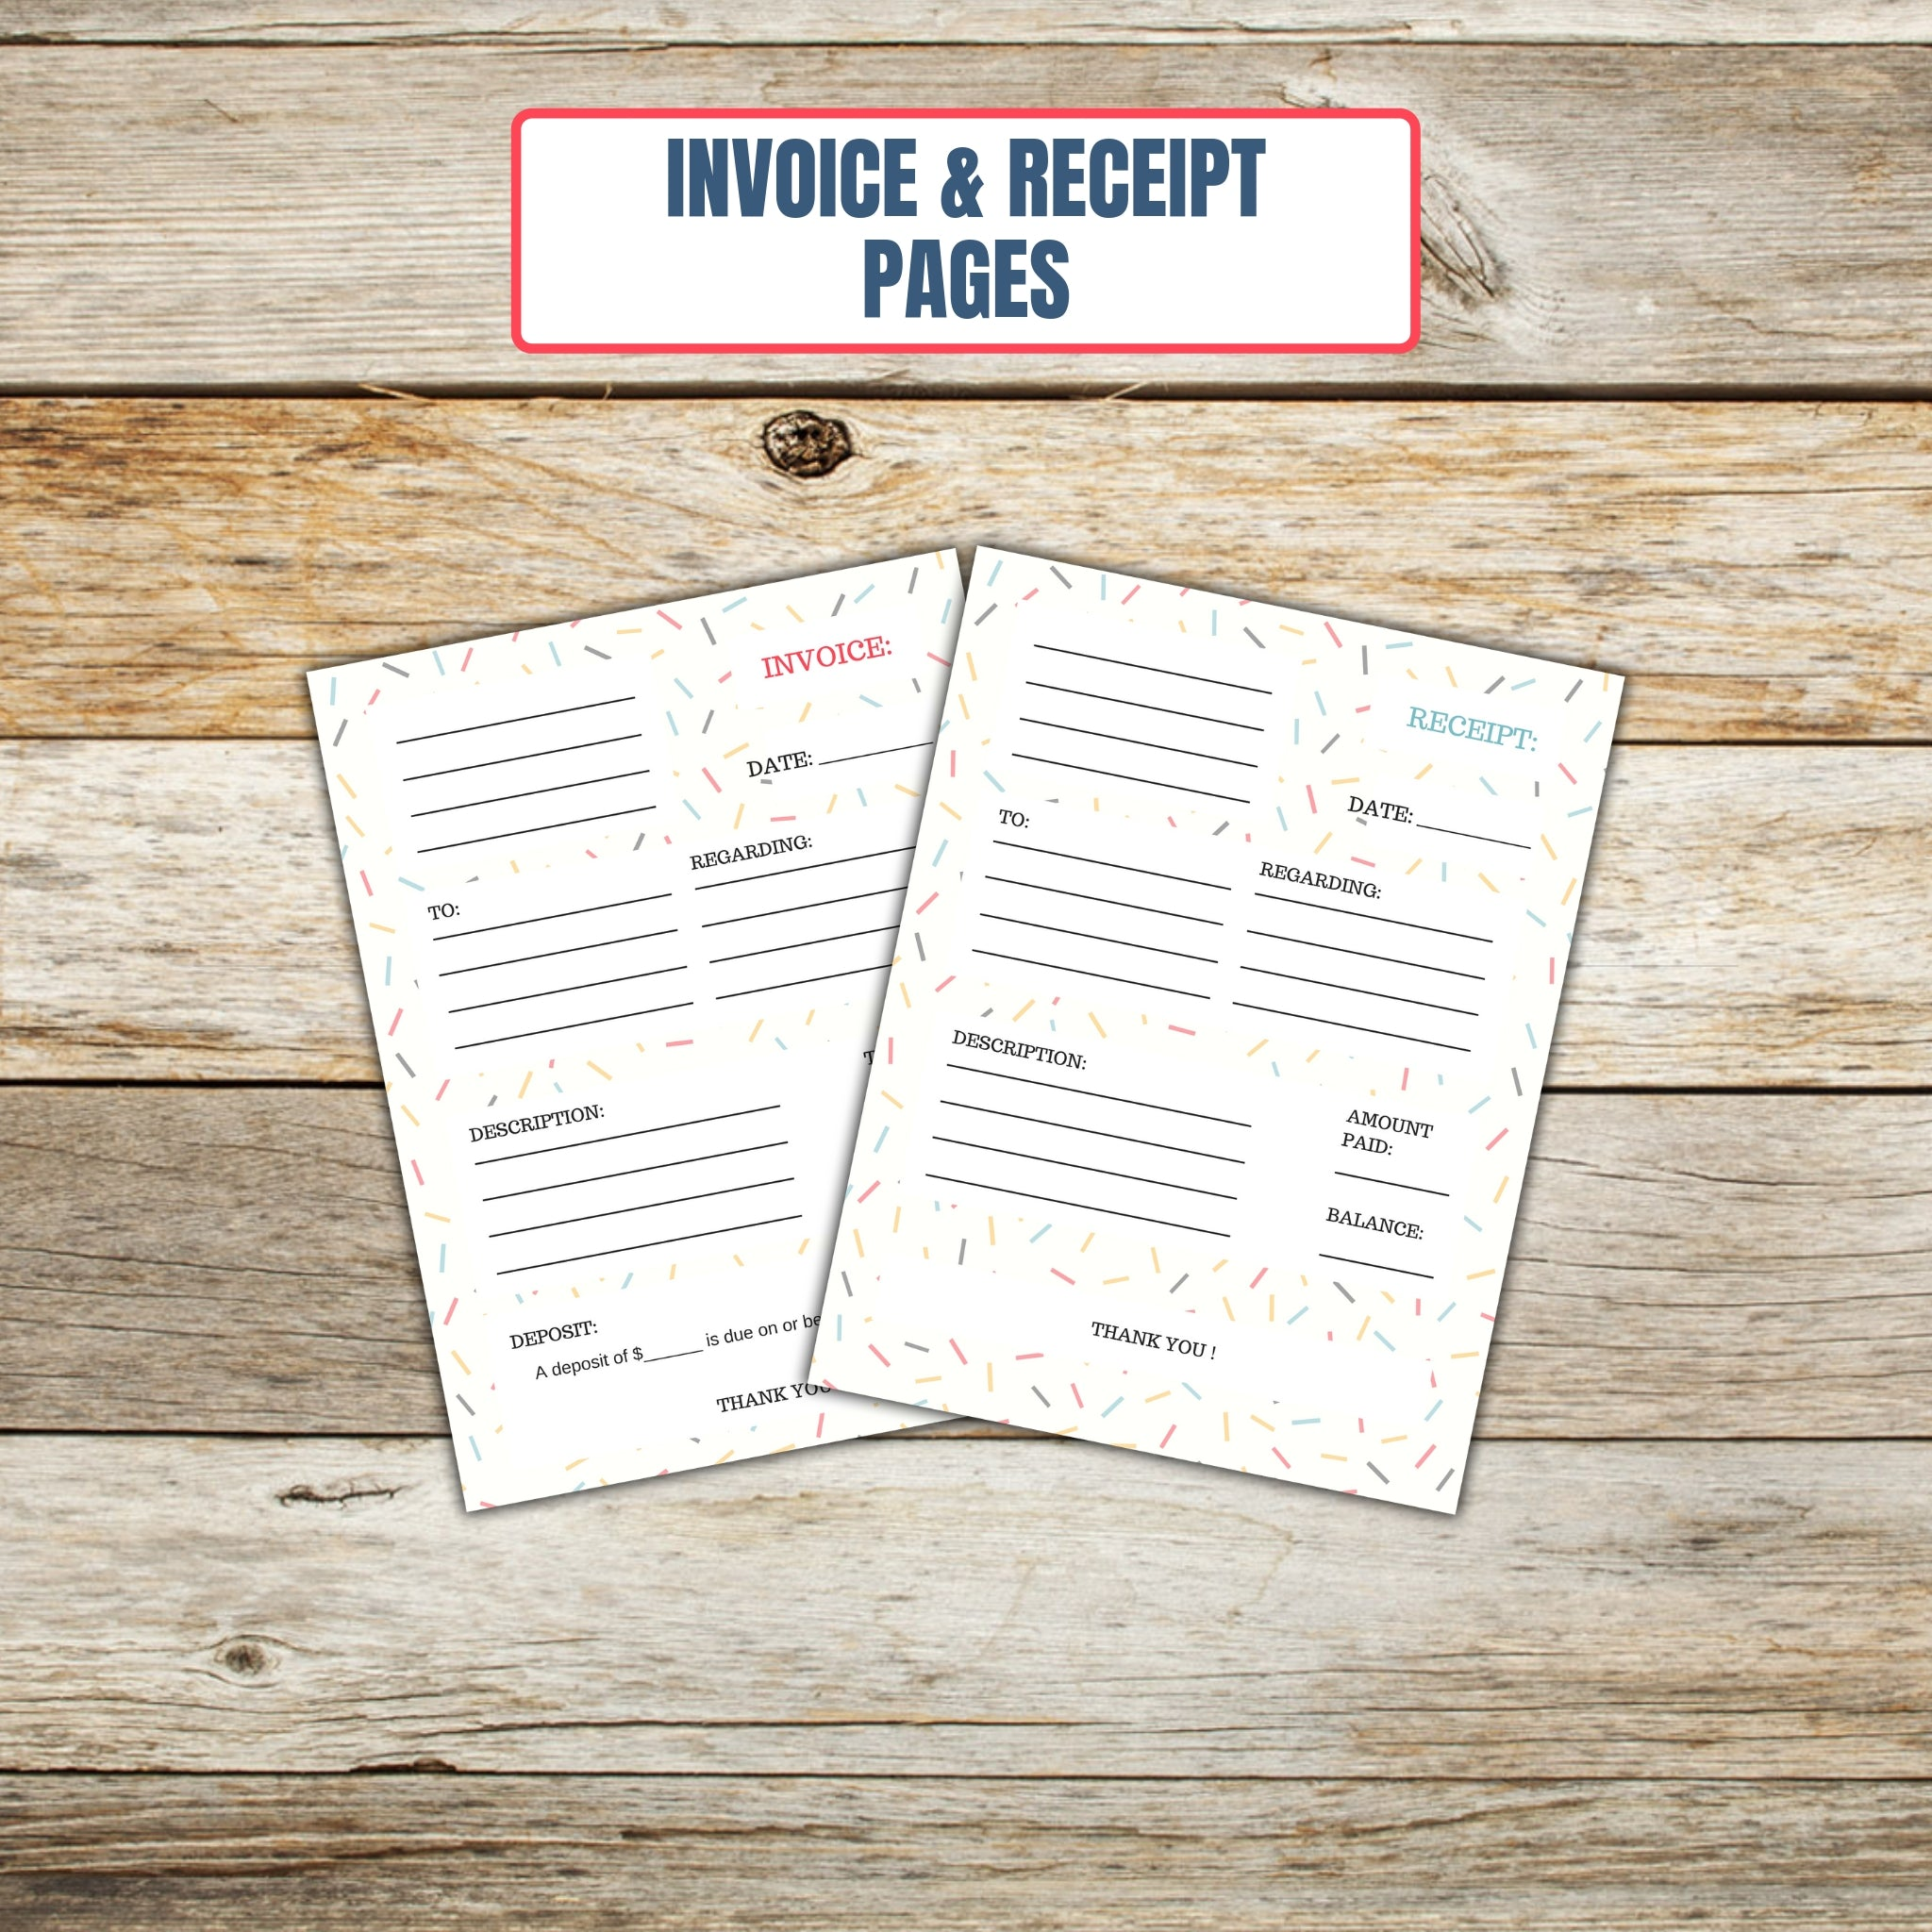 Ultimate Cake Project Printable Planner Geometric Design invoice and receipt page